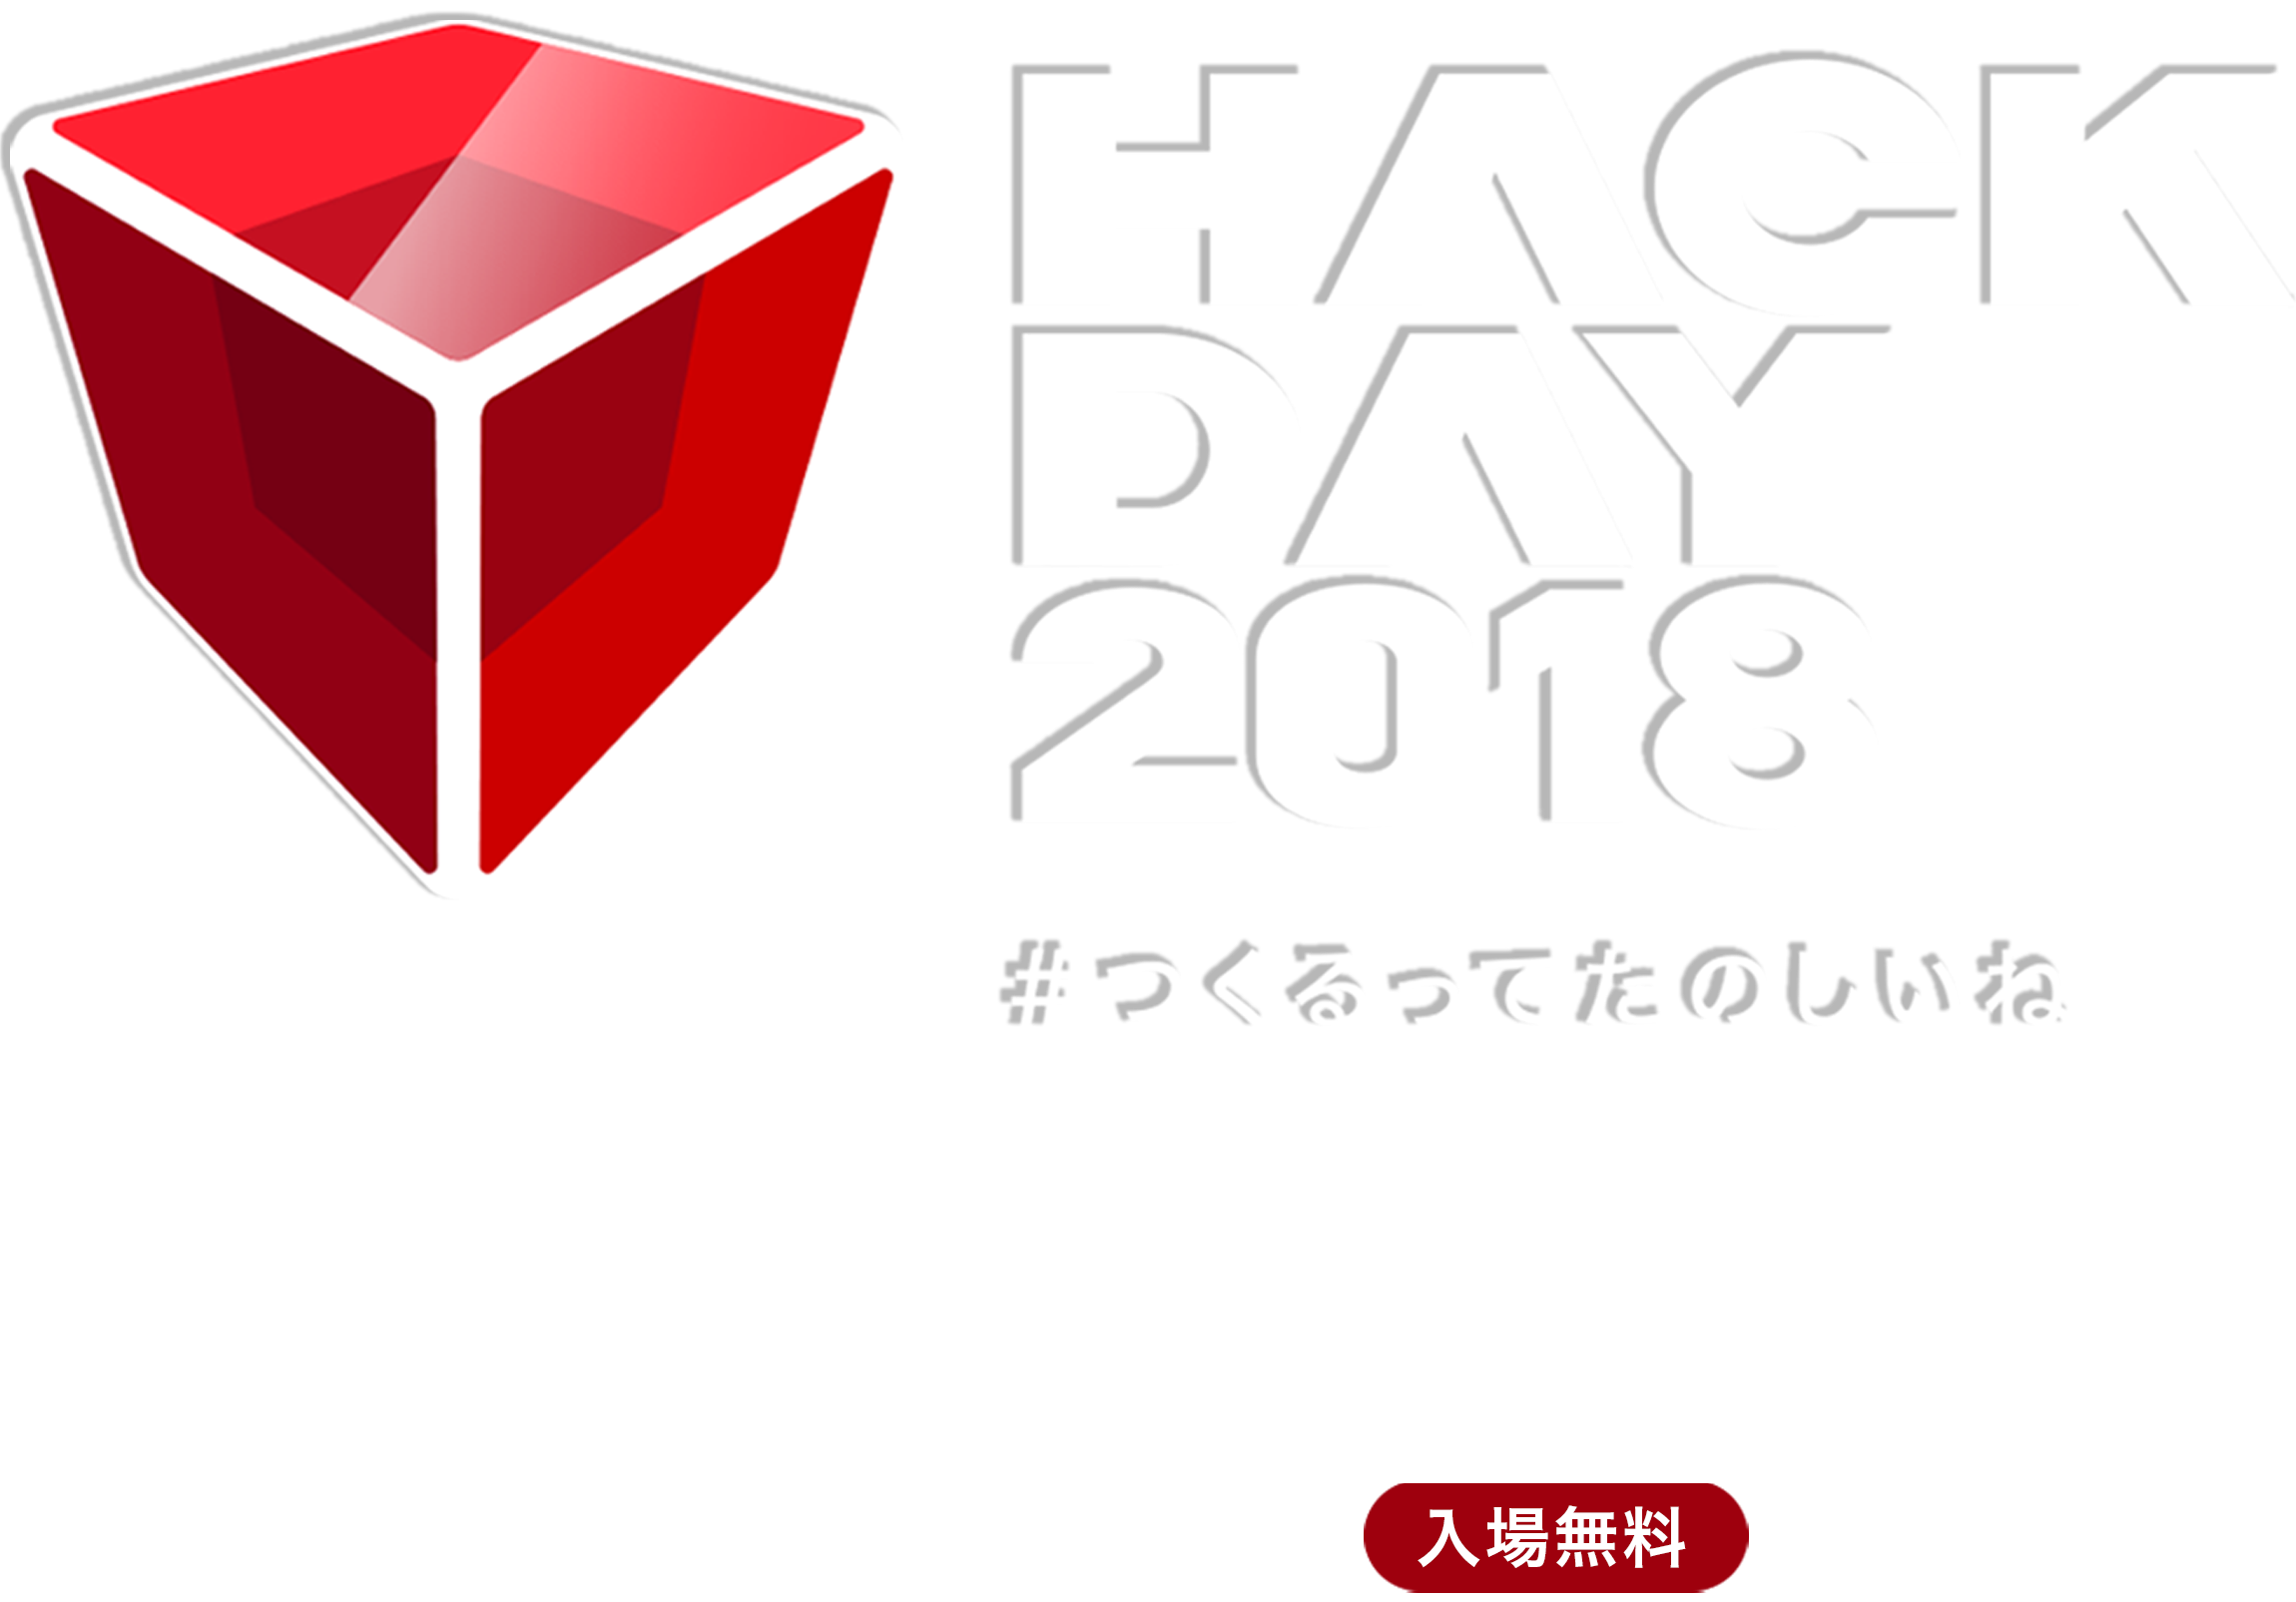 HACKDAY2018 12月15日(土)・16日(日)@秋葉原UDX